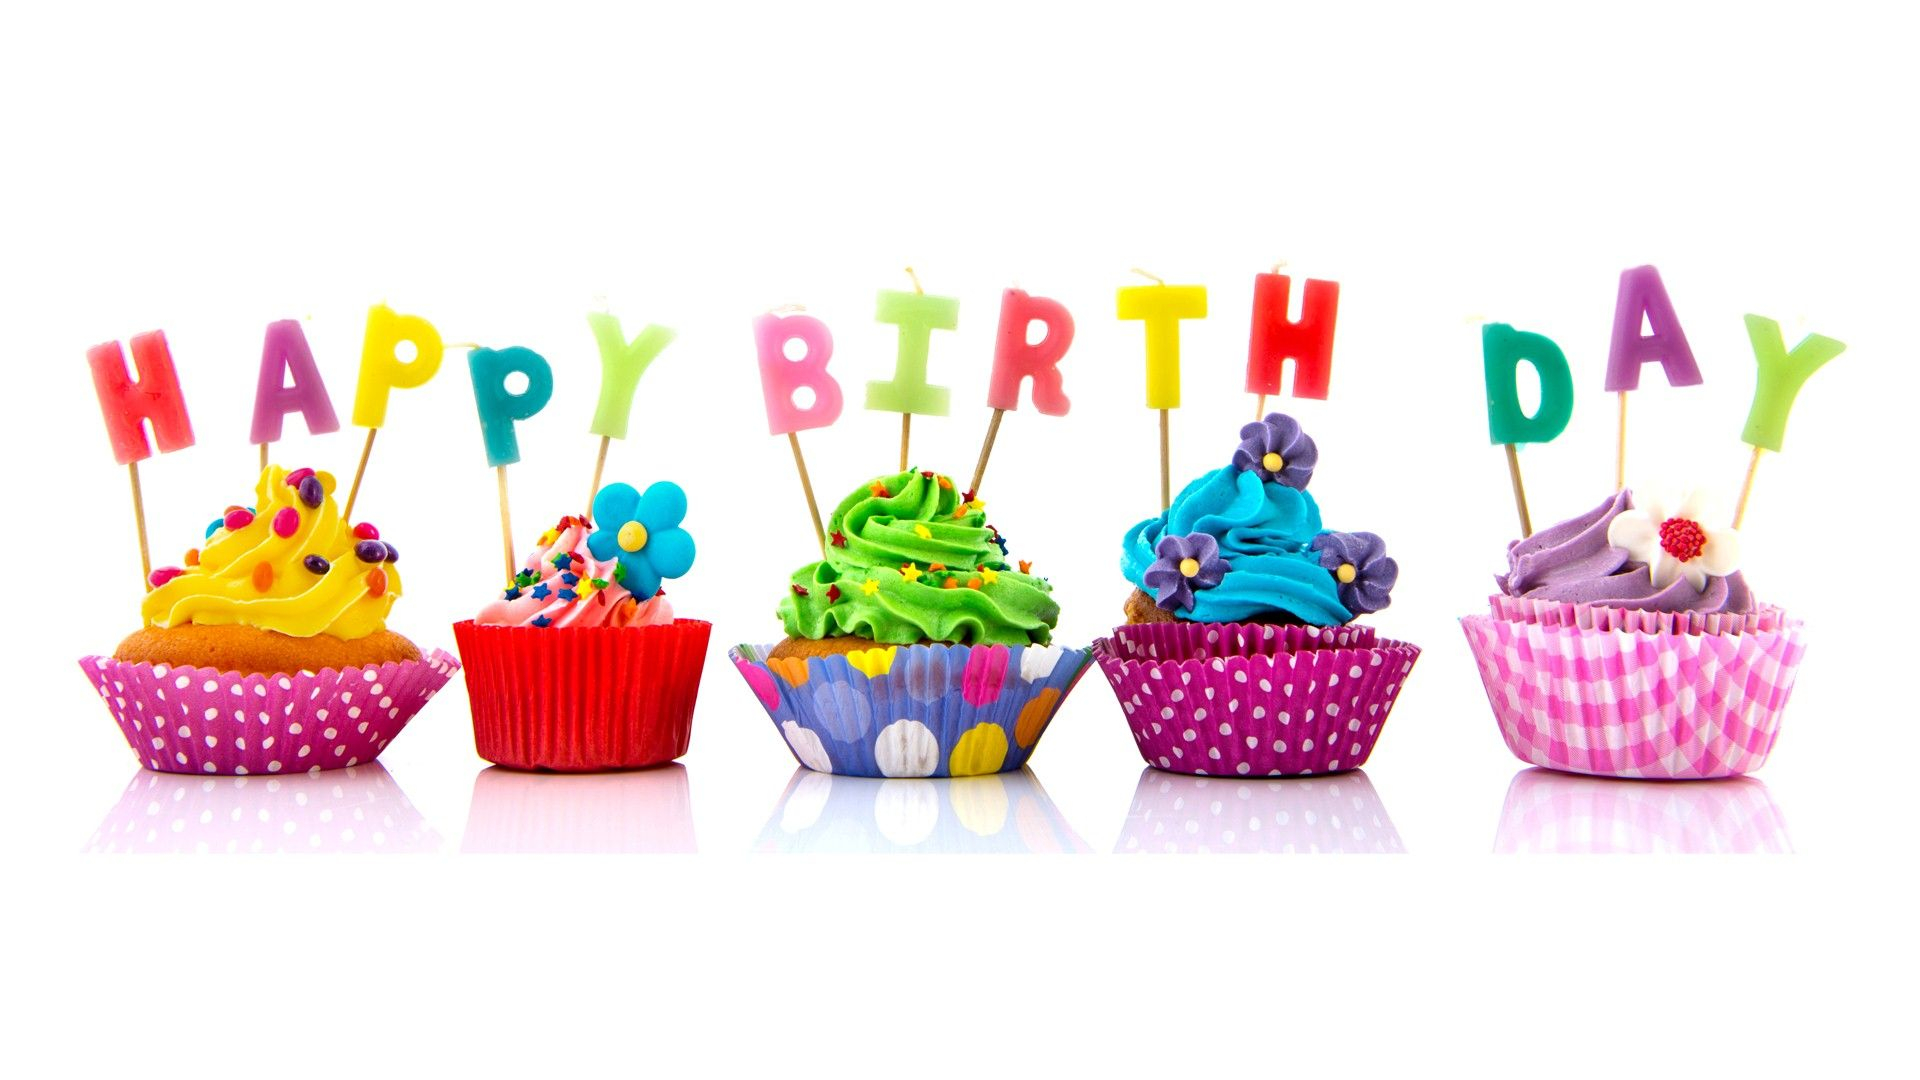 Birthday Cake Picture Free Download Birthday Wallpapers Free Download Hd Cake Celebration Party Images